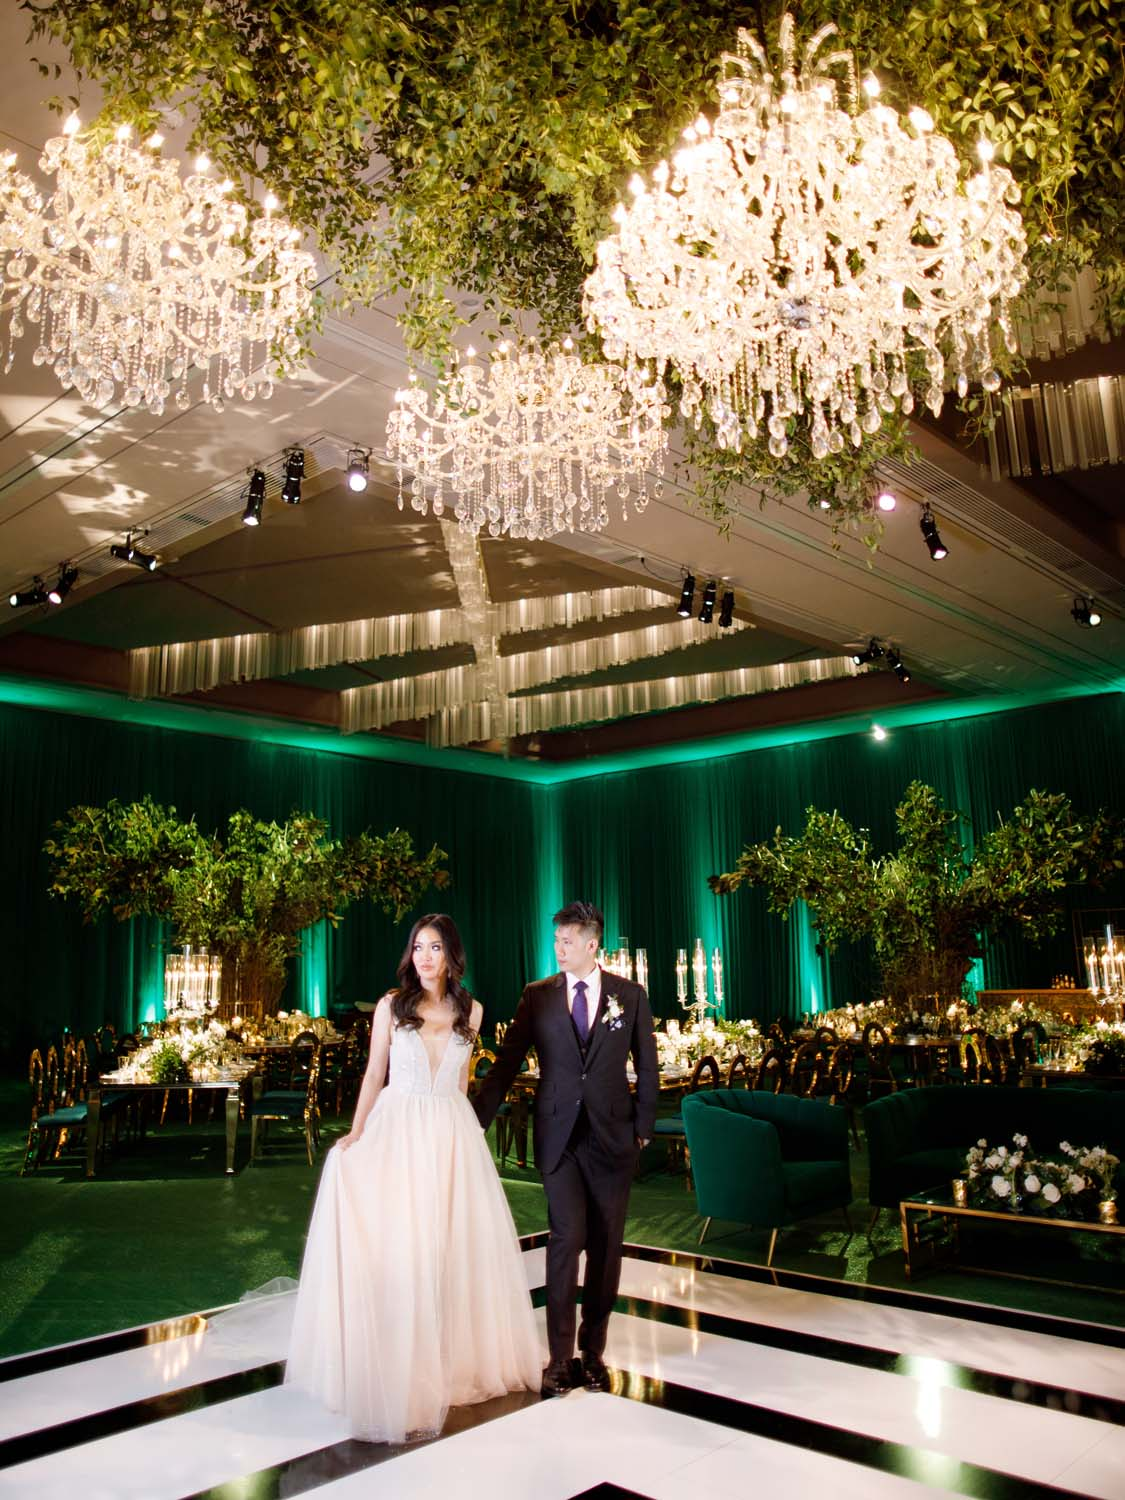 Bride and groom on black and white dance floor in all green wedding. Luxury Las Vegas Wedding Planner Andrea Eppolito. www.andreaeppolitoevents.com. Photo by Rene Zadori.